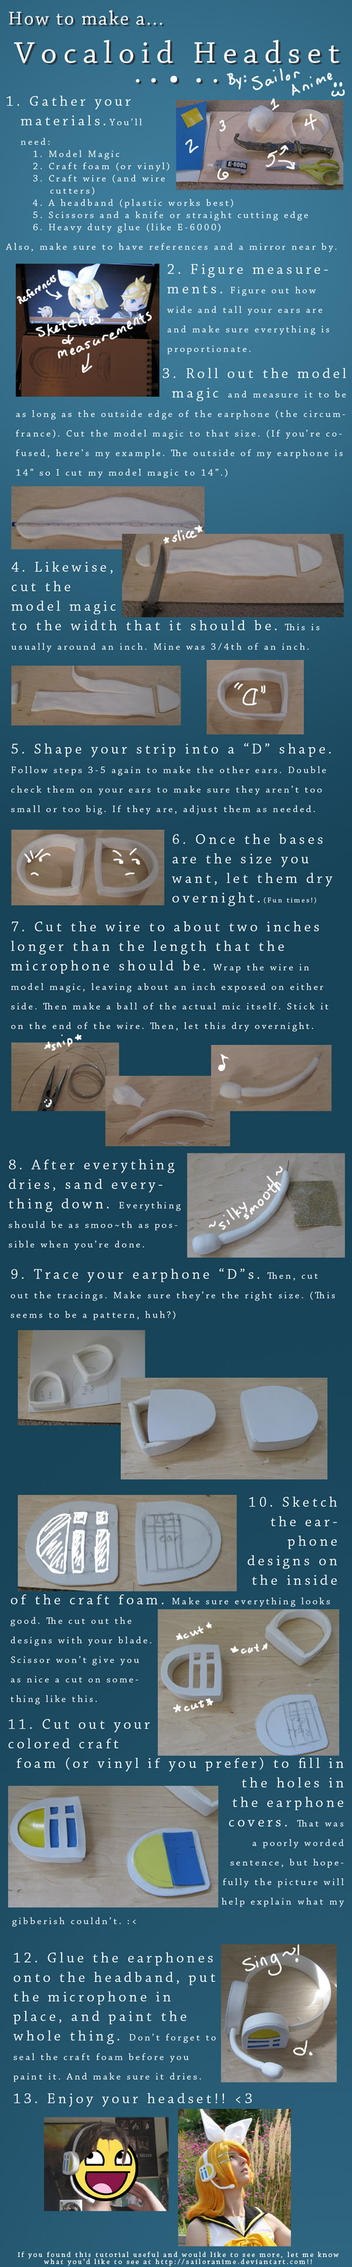 Vocaloid Headset Tutorial by SailorAnime